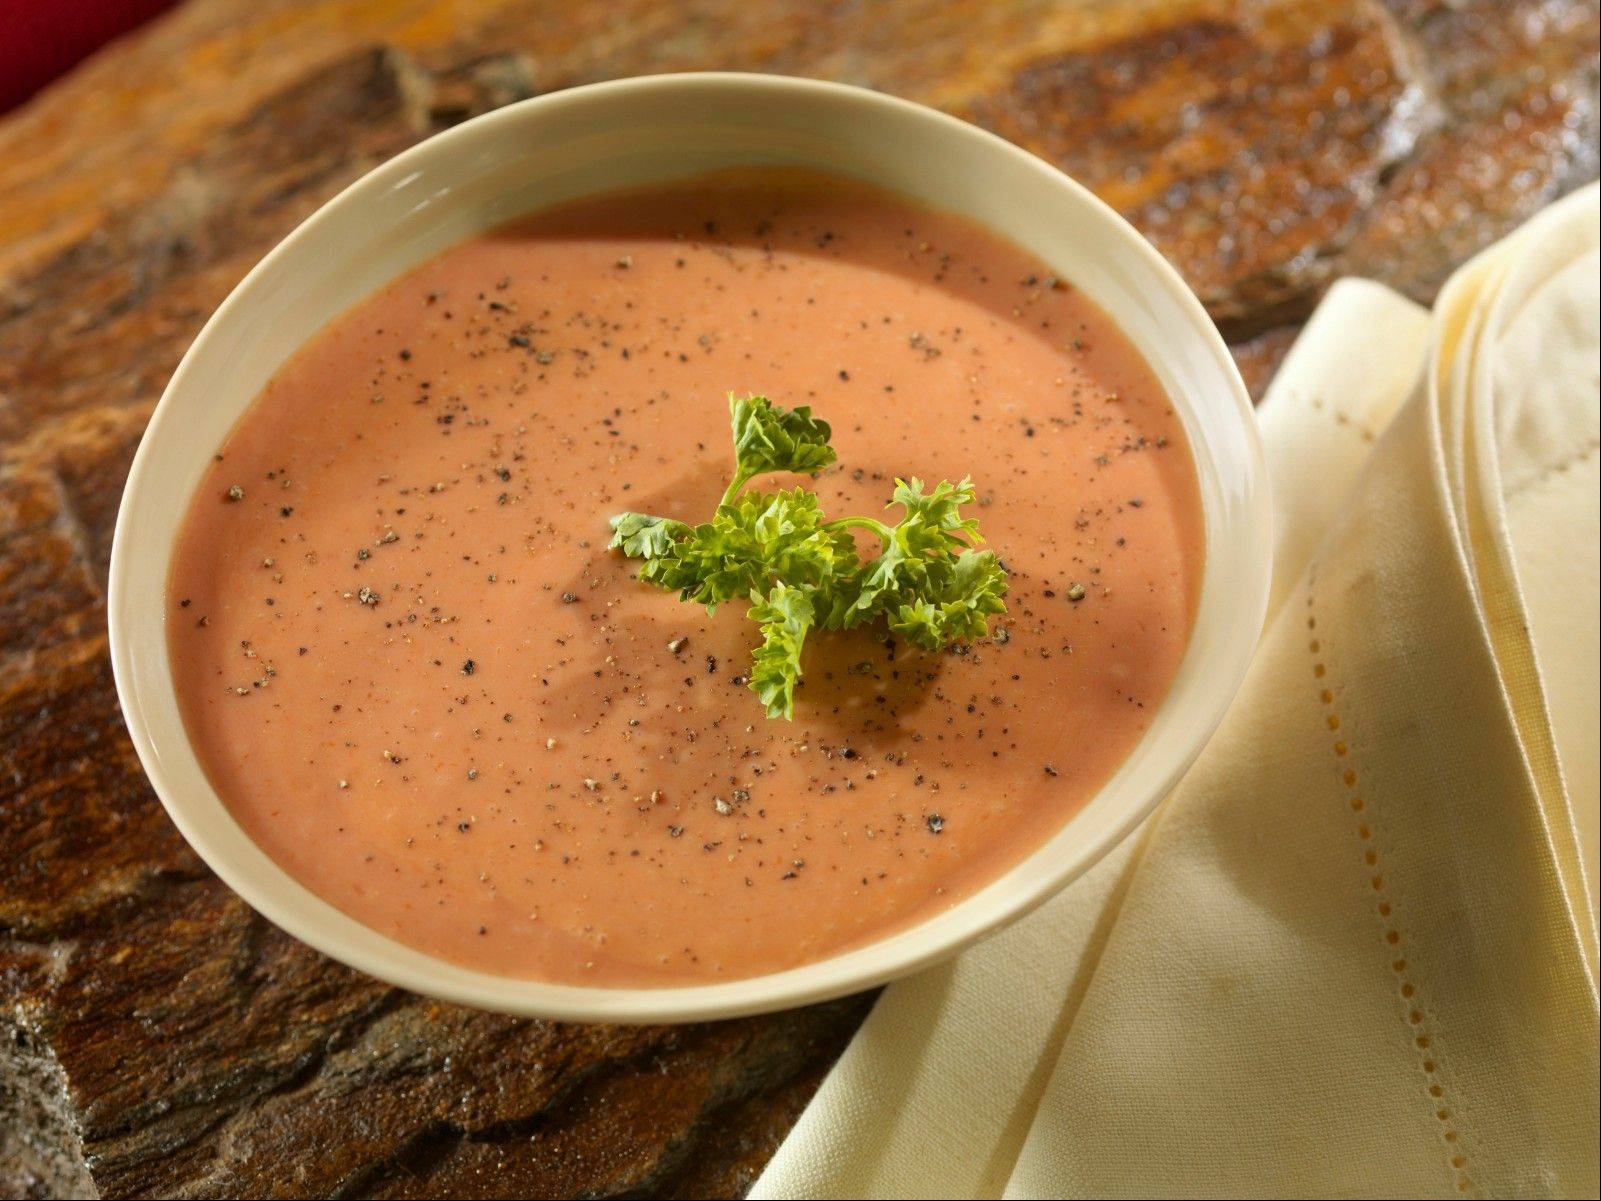 The Artisan Table's menu includes this creamy tomato soup with fresh herbs.